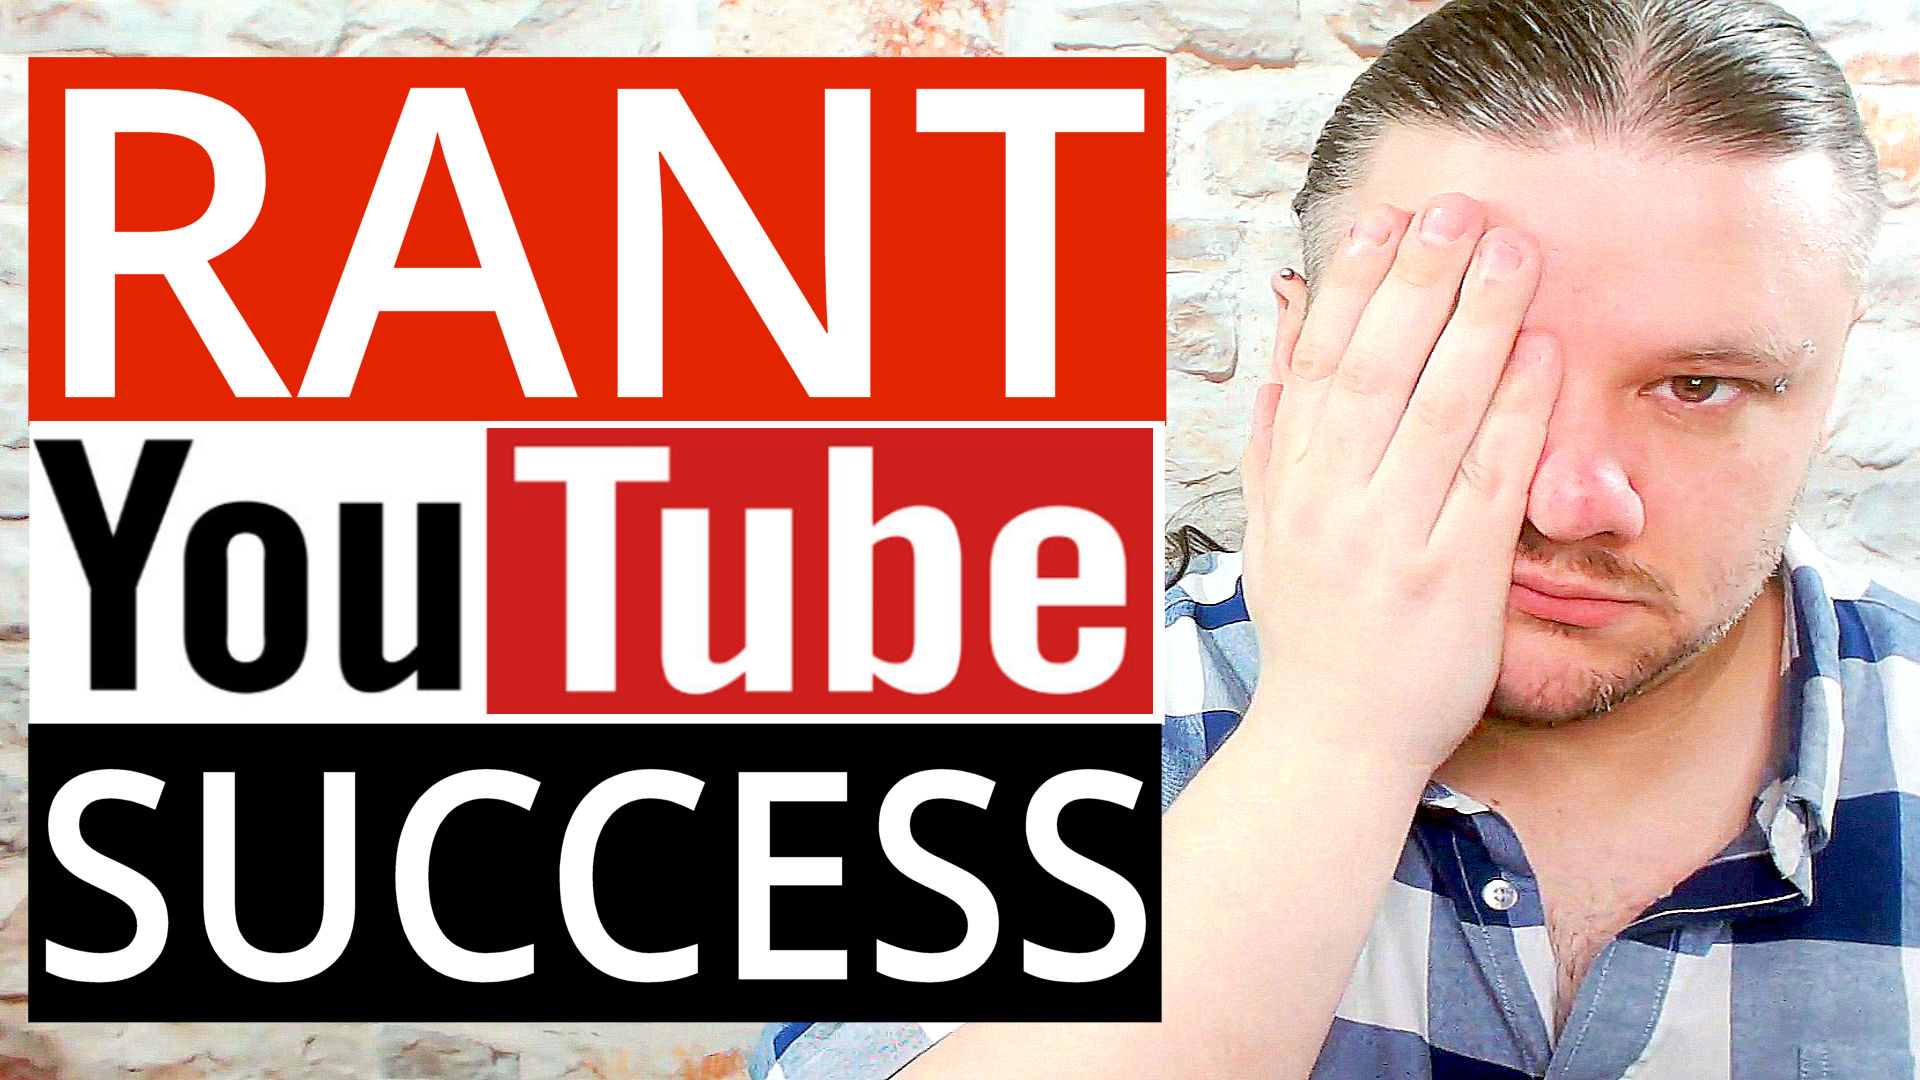 alan spicer,alanspicer,asyt,success on youtube,success on youtube 2018,success on youtube rant,youtube success,youtube success story,youtube success tips,being successful on youtube,how to be successful on youtube,successful on youtube,Roberto Blake,philip defranco,vlogbrothers,what is success on youtube,successful youtube channel,how to youtube,youtube success rant,what is youtube success rant,how to grow on youtube,grow on youtube,grow on youtube rant